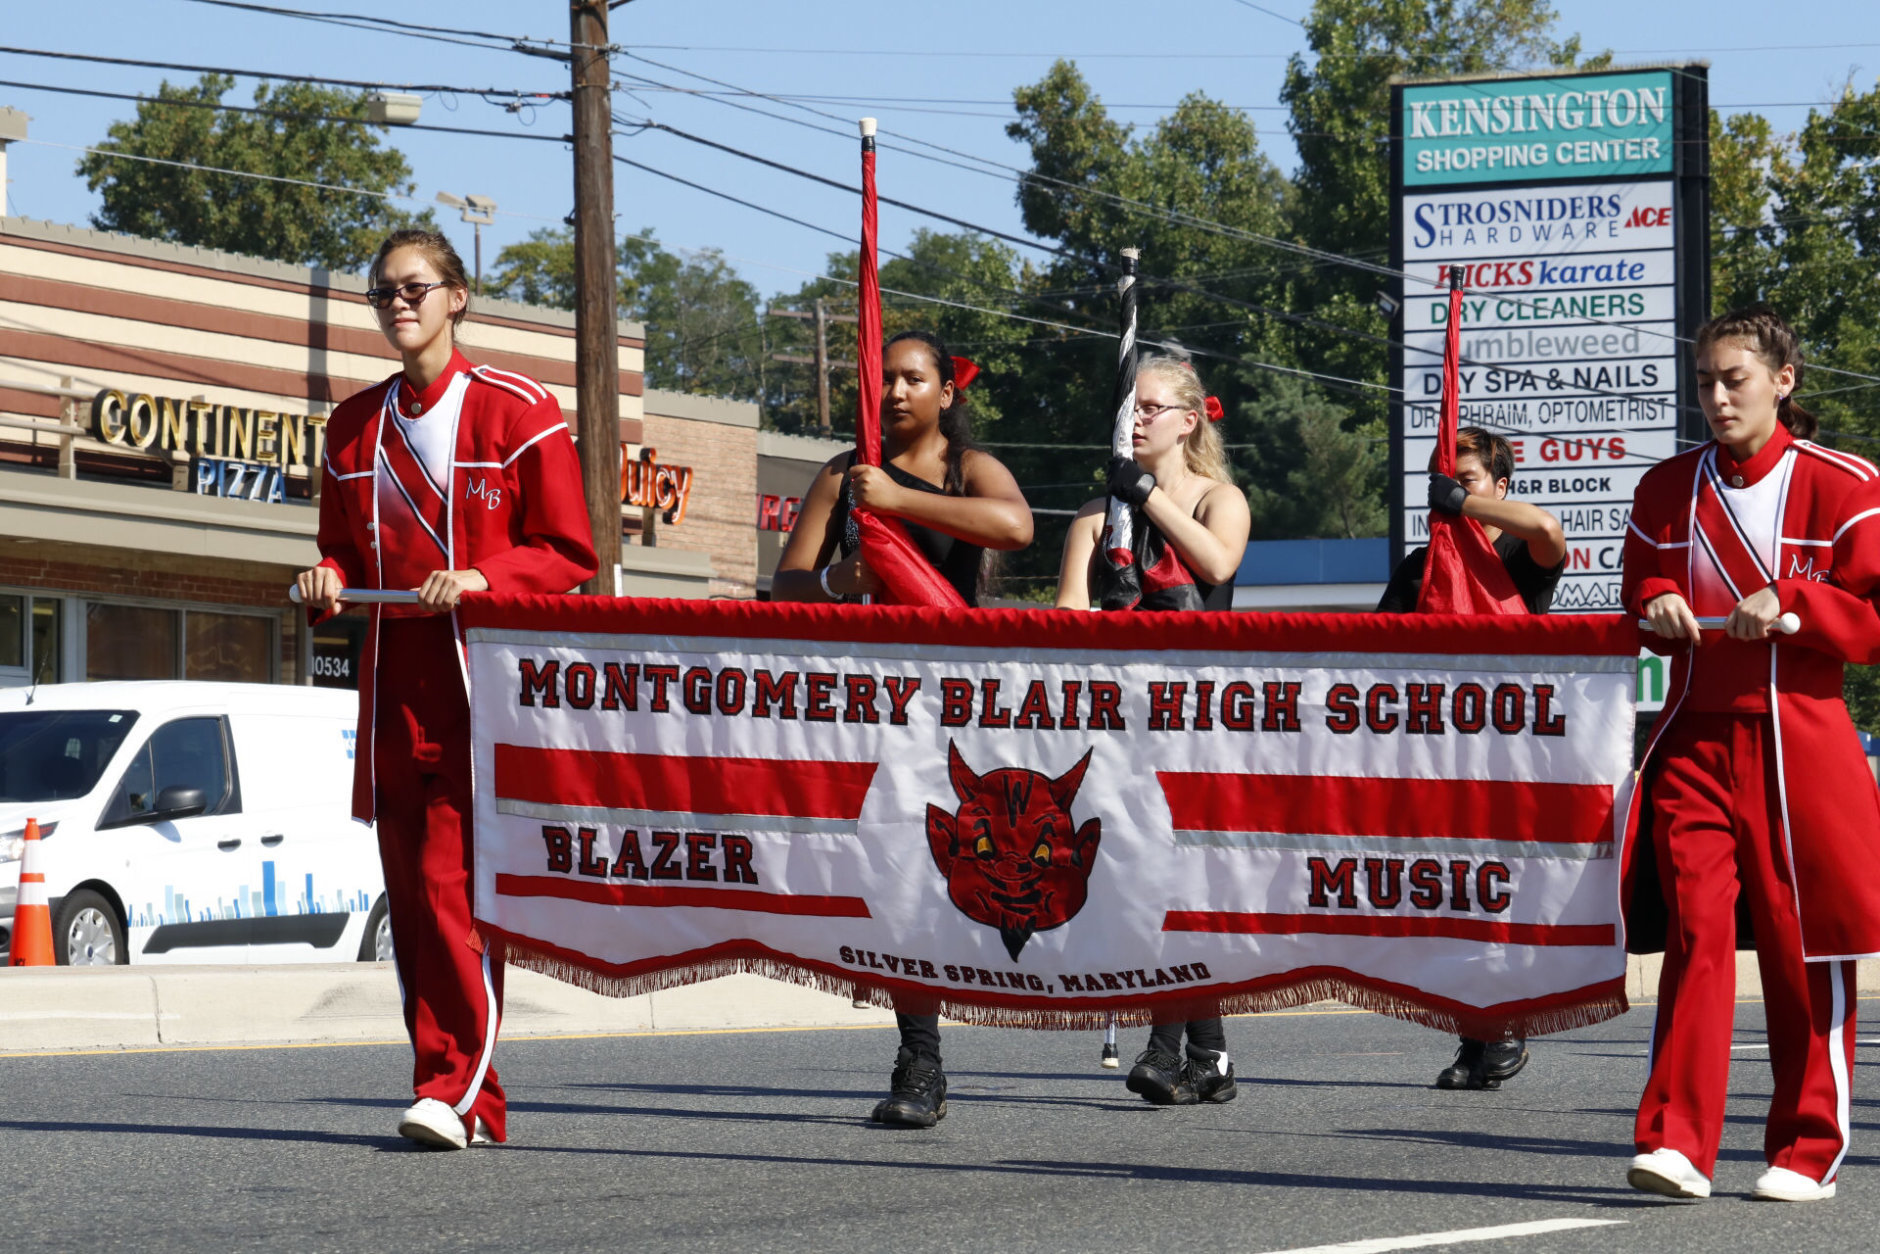 The Montgomery Blair High School marching band plays in the Kensington Labor Day Parade. (WTOP/Kate Ryan)